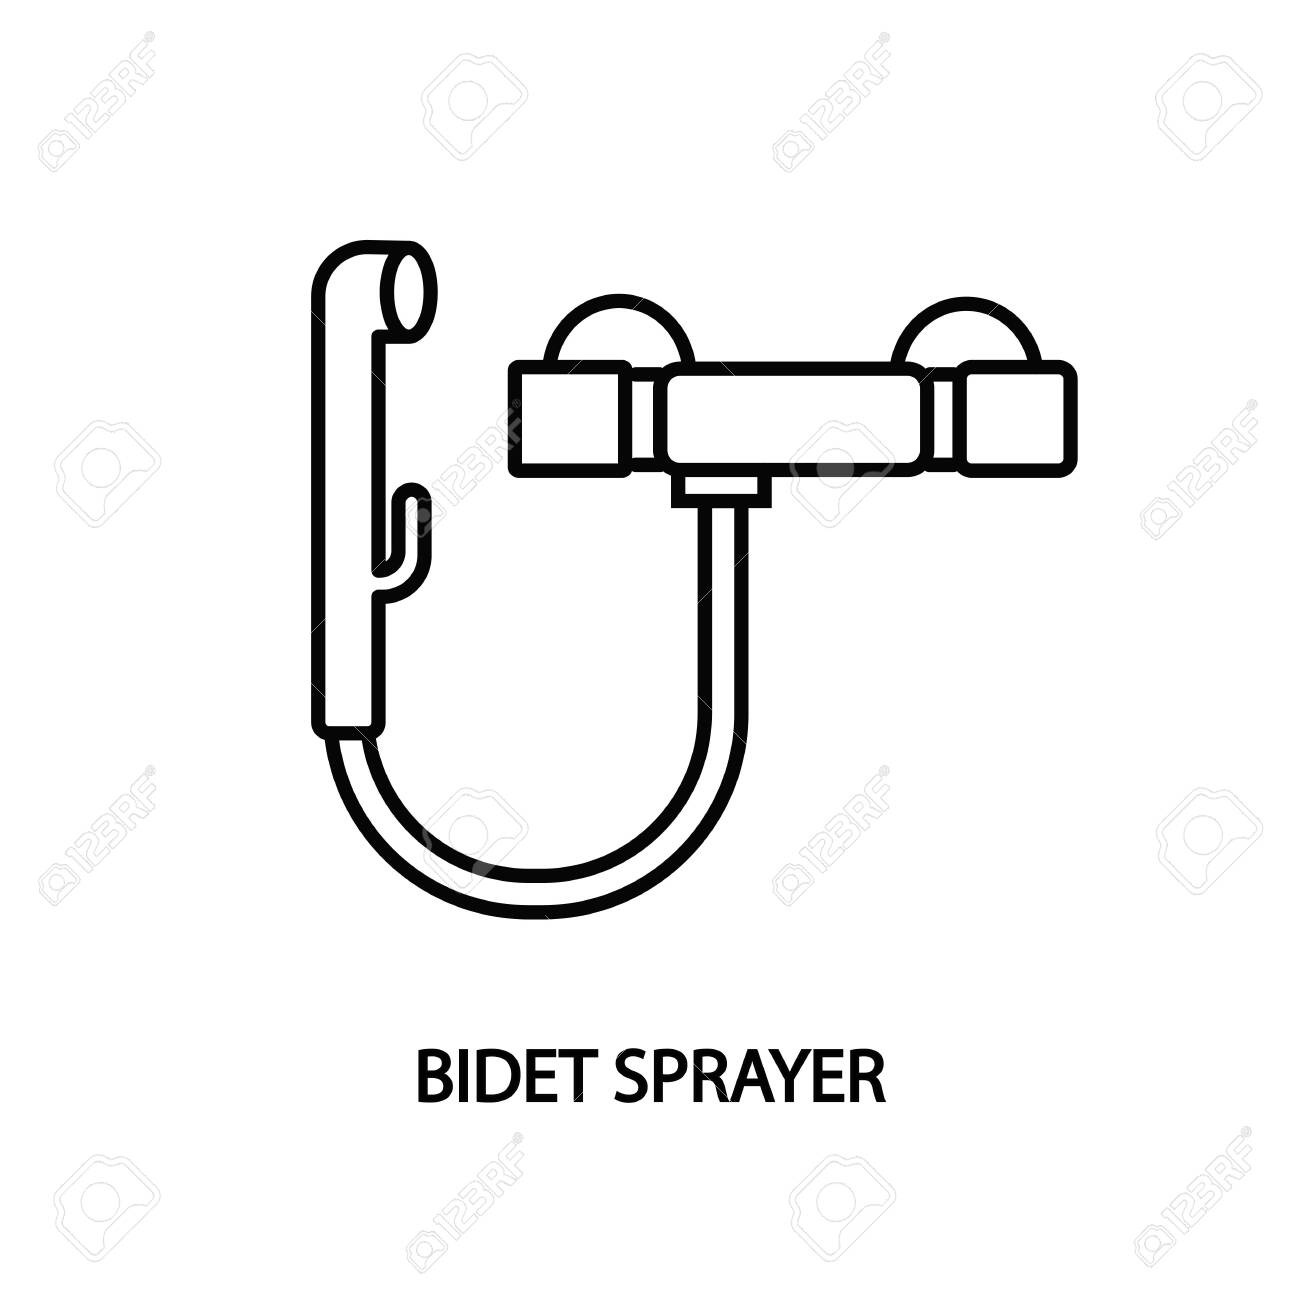 Bidet Sprayer Line Icon Vector Hygienic Shower Royalty Free Cliparts Vectors And Stock Illustration Image 140533666